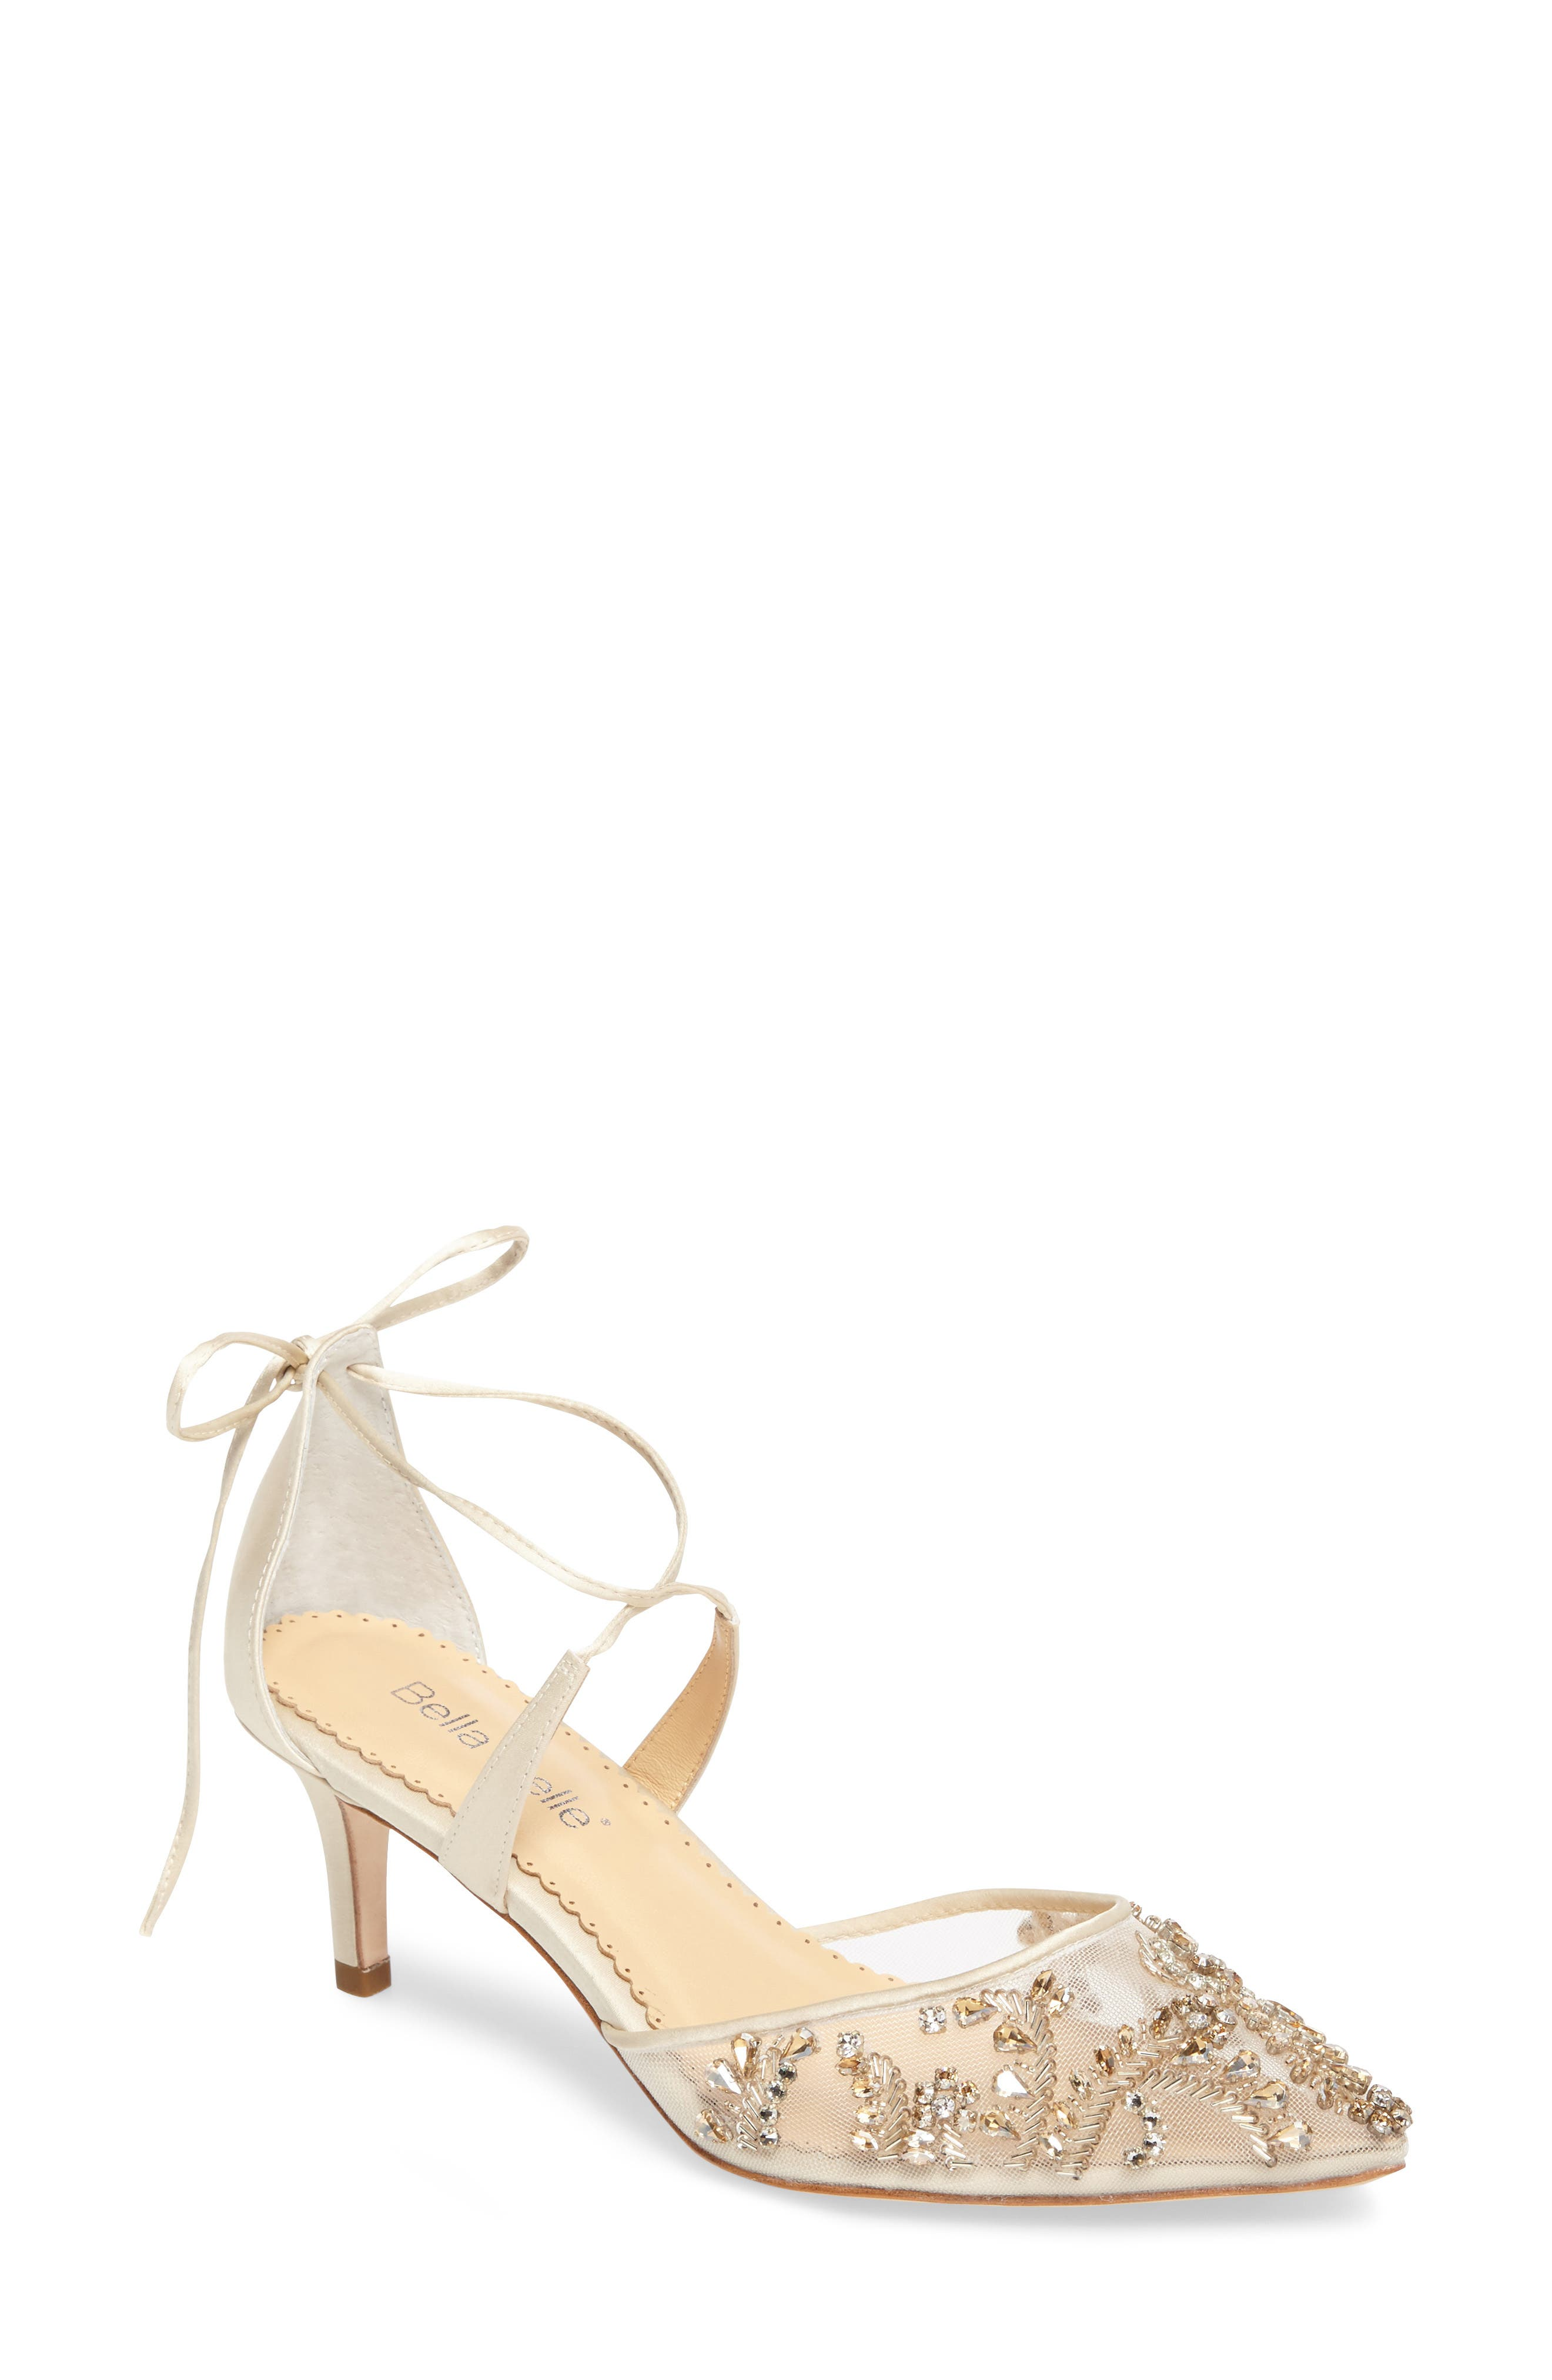 Frances Embellished Kitten Heel Pump,                         Main,                         color, CHAMPAGNE SILK